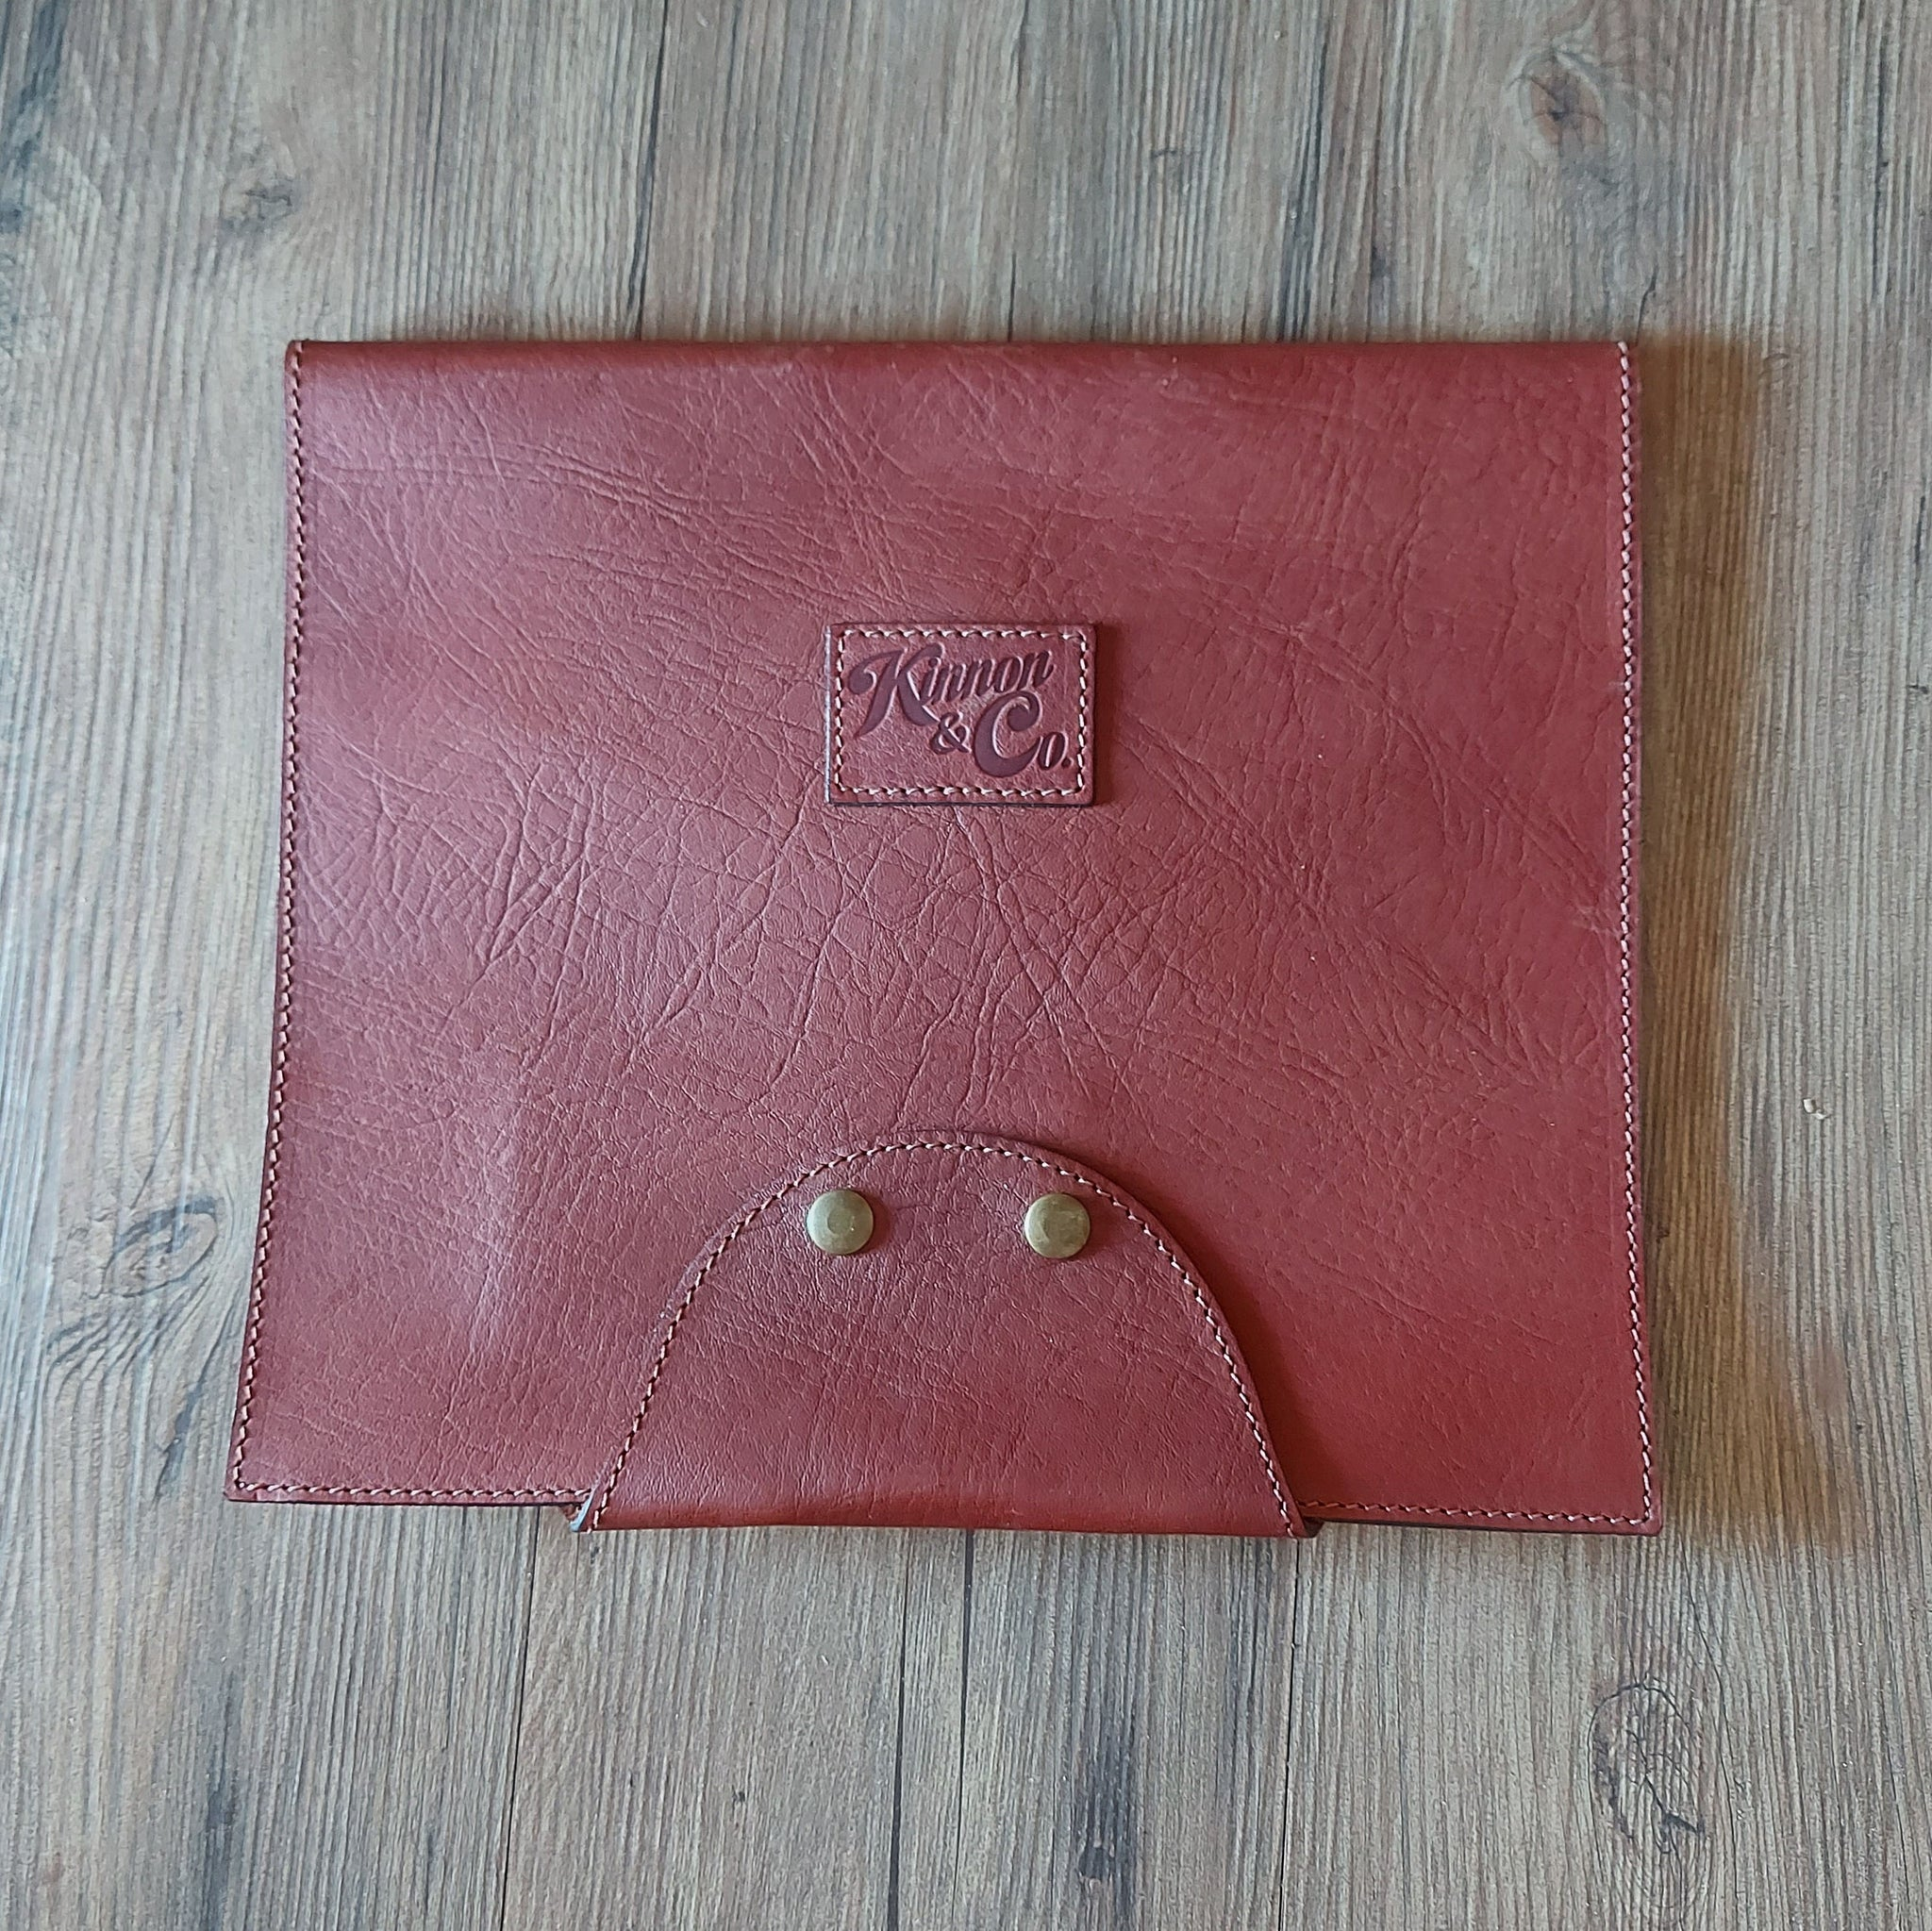 Kinnon & Co Truck Log Book Cover Leather Tan